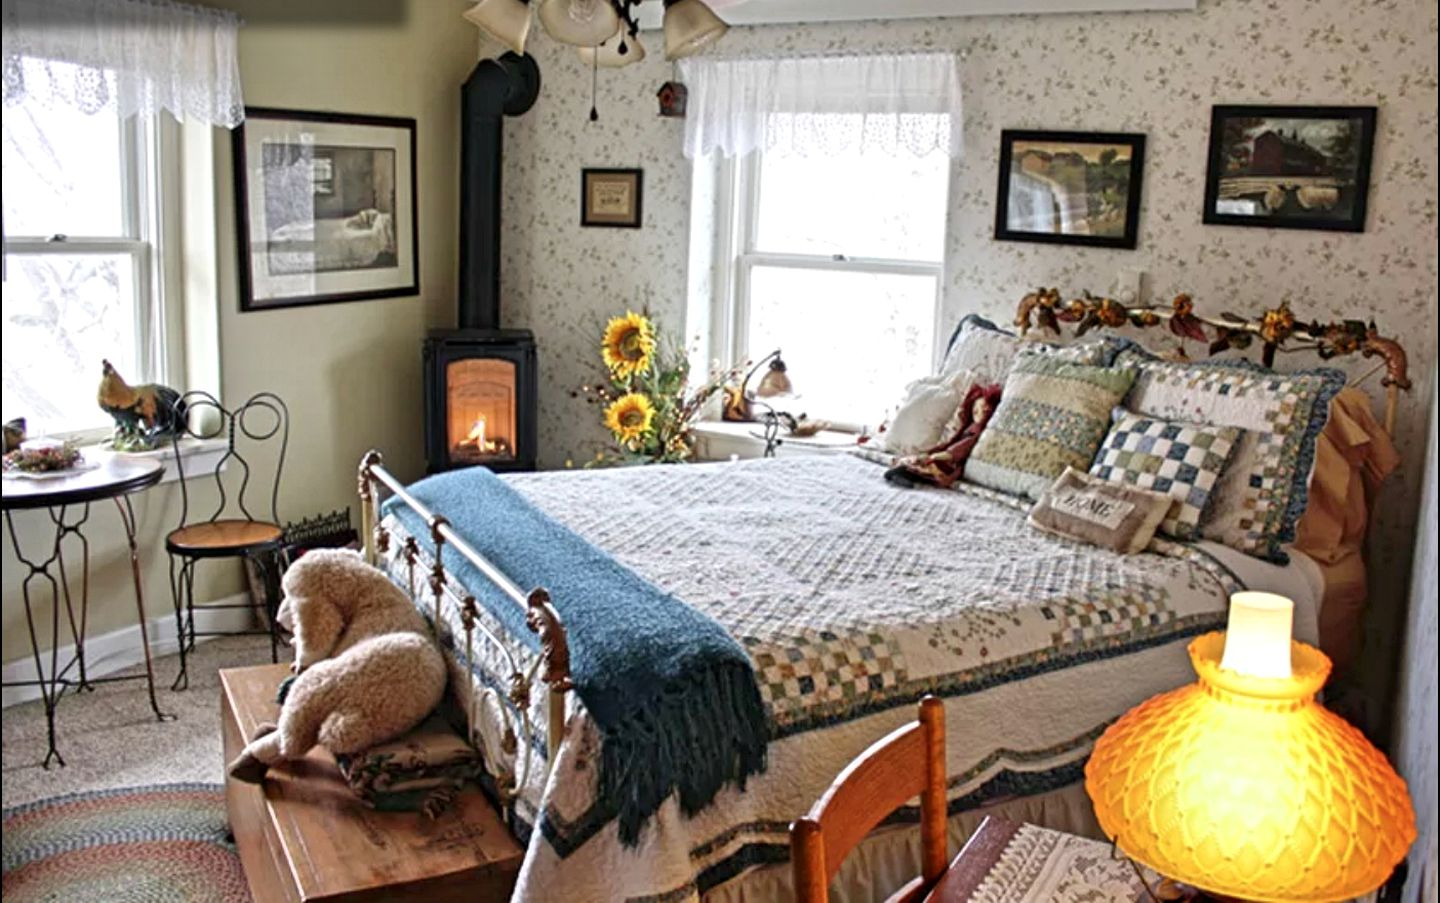 Inside the bed and breakfast, Lincoln perfect for romantic getaways, Nebraska